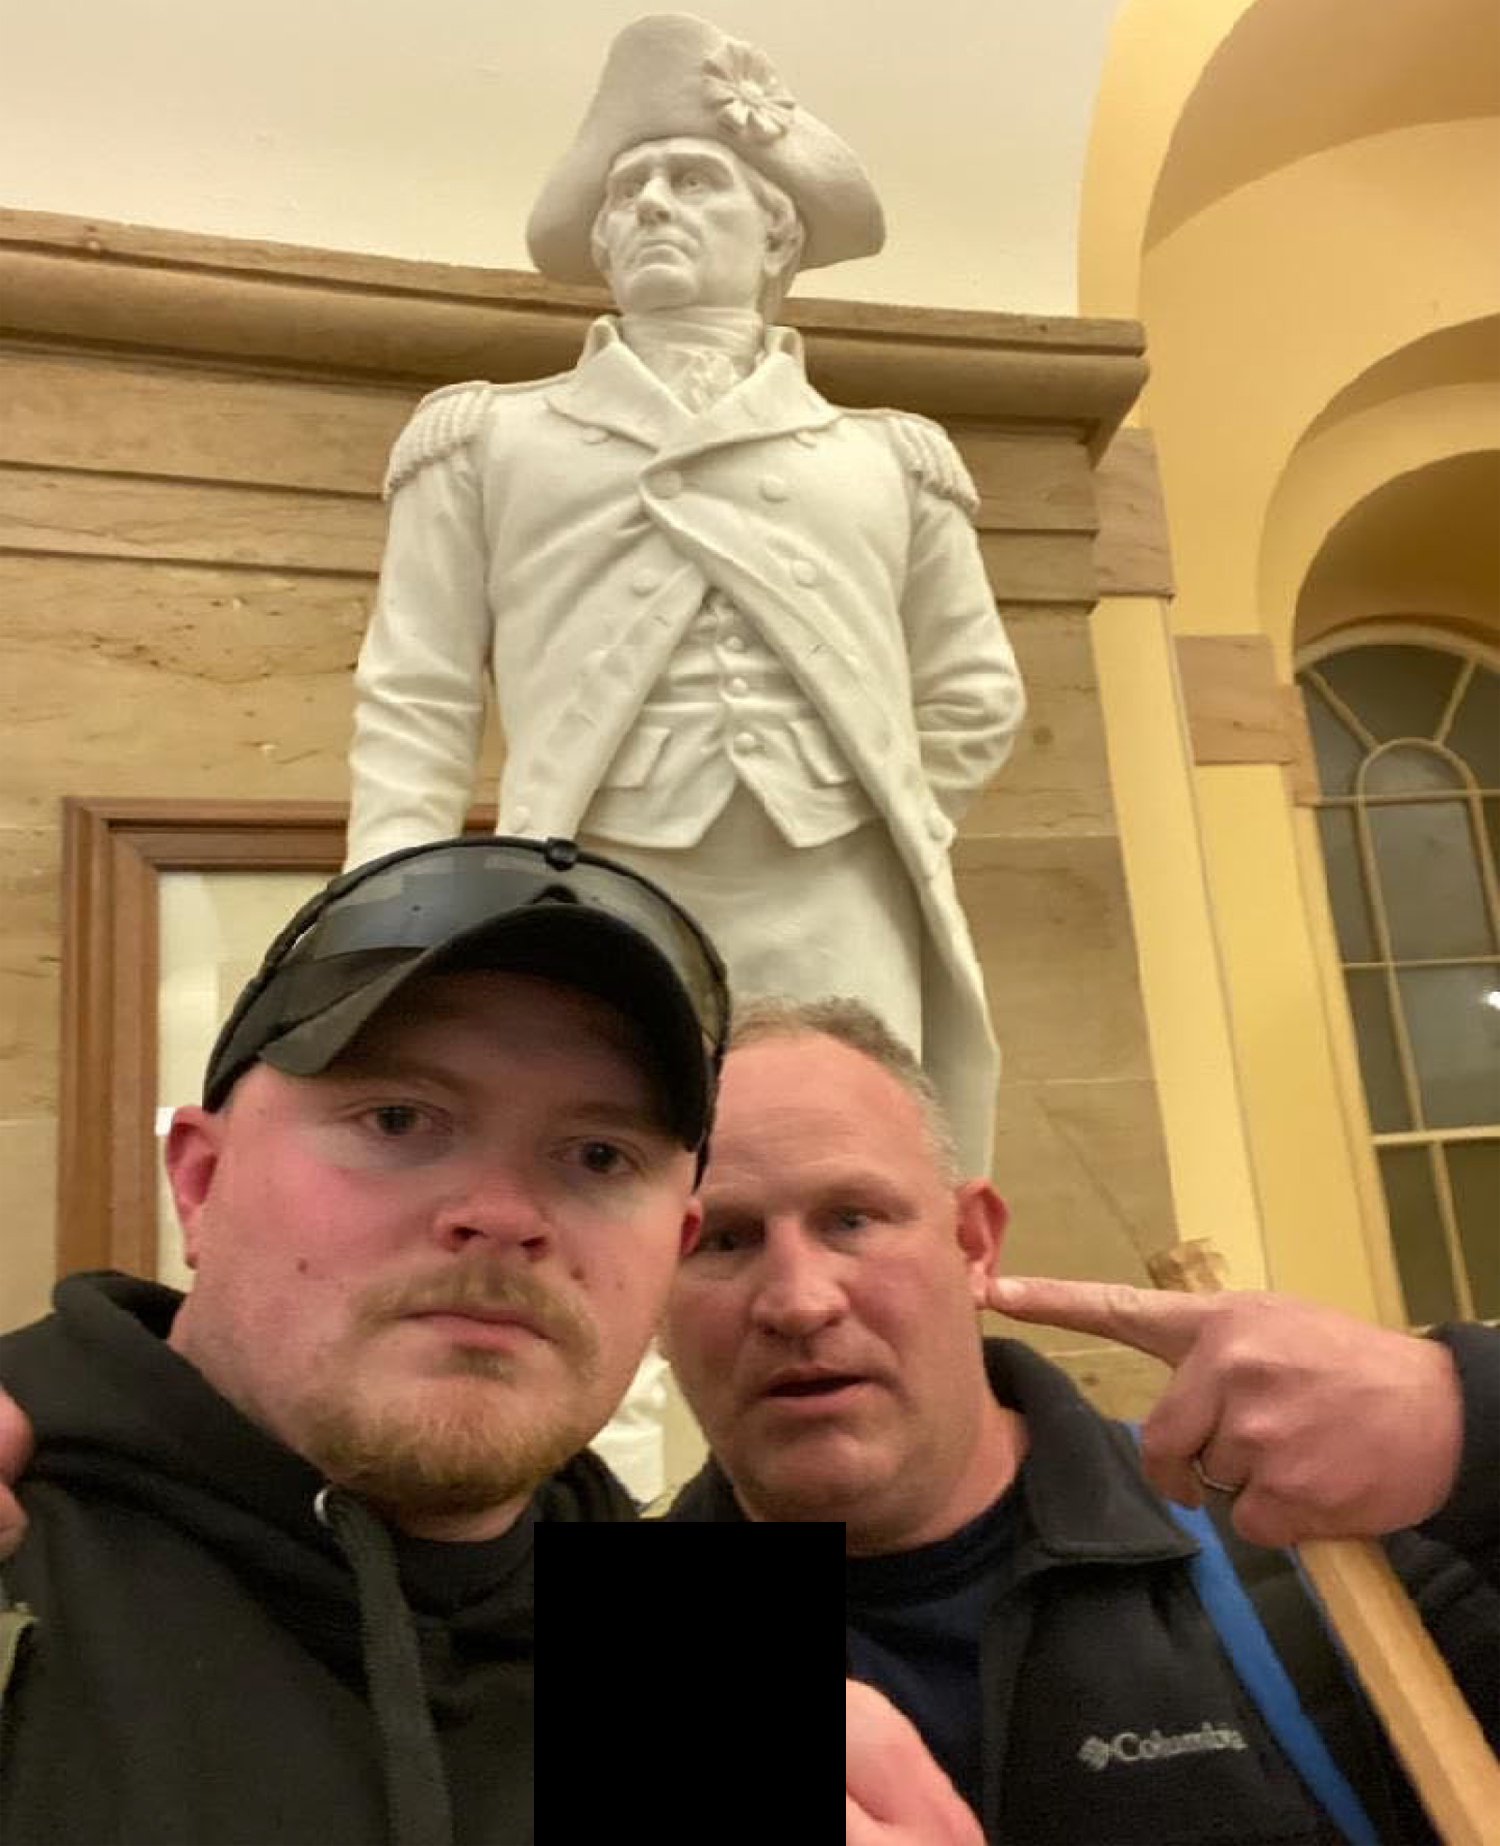 Thomas Robertson and Jacob Fracker, of the Rocky Mount Police Department, were charged in connection with the storming of the Capitol building